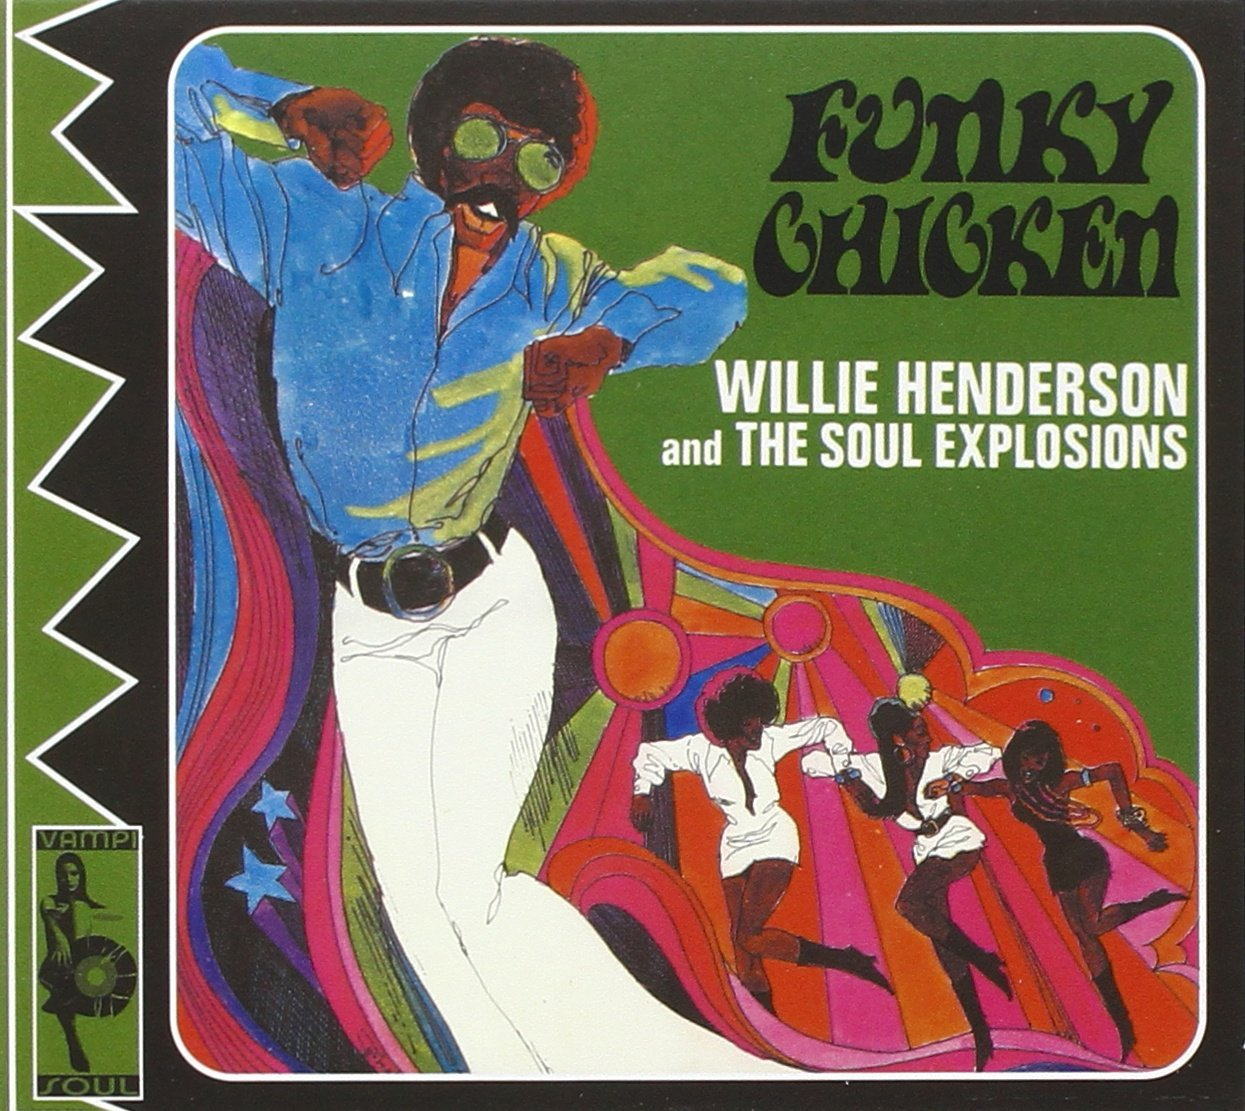 Image result for funky chicken willie henderson single images